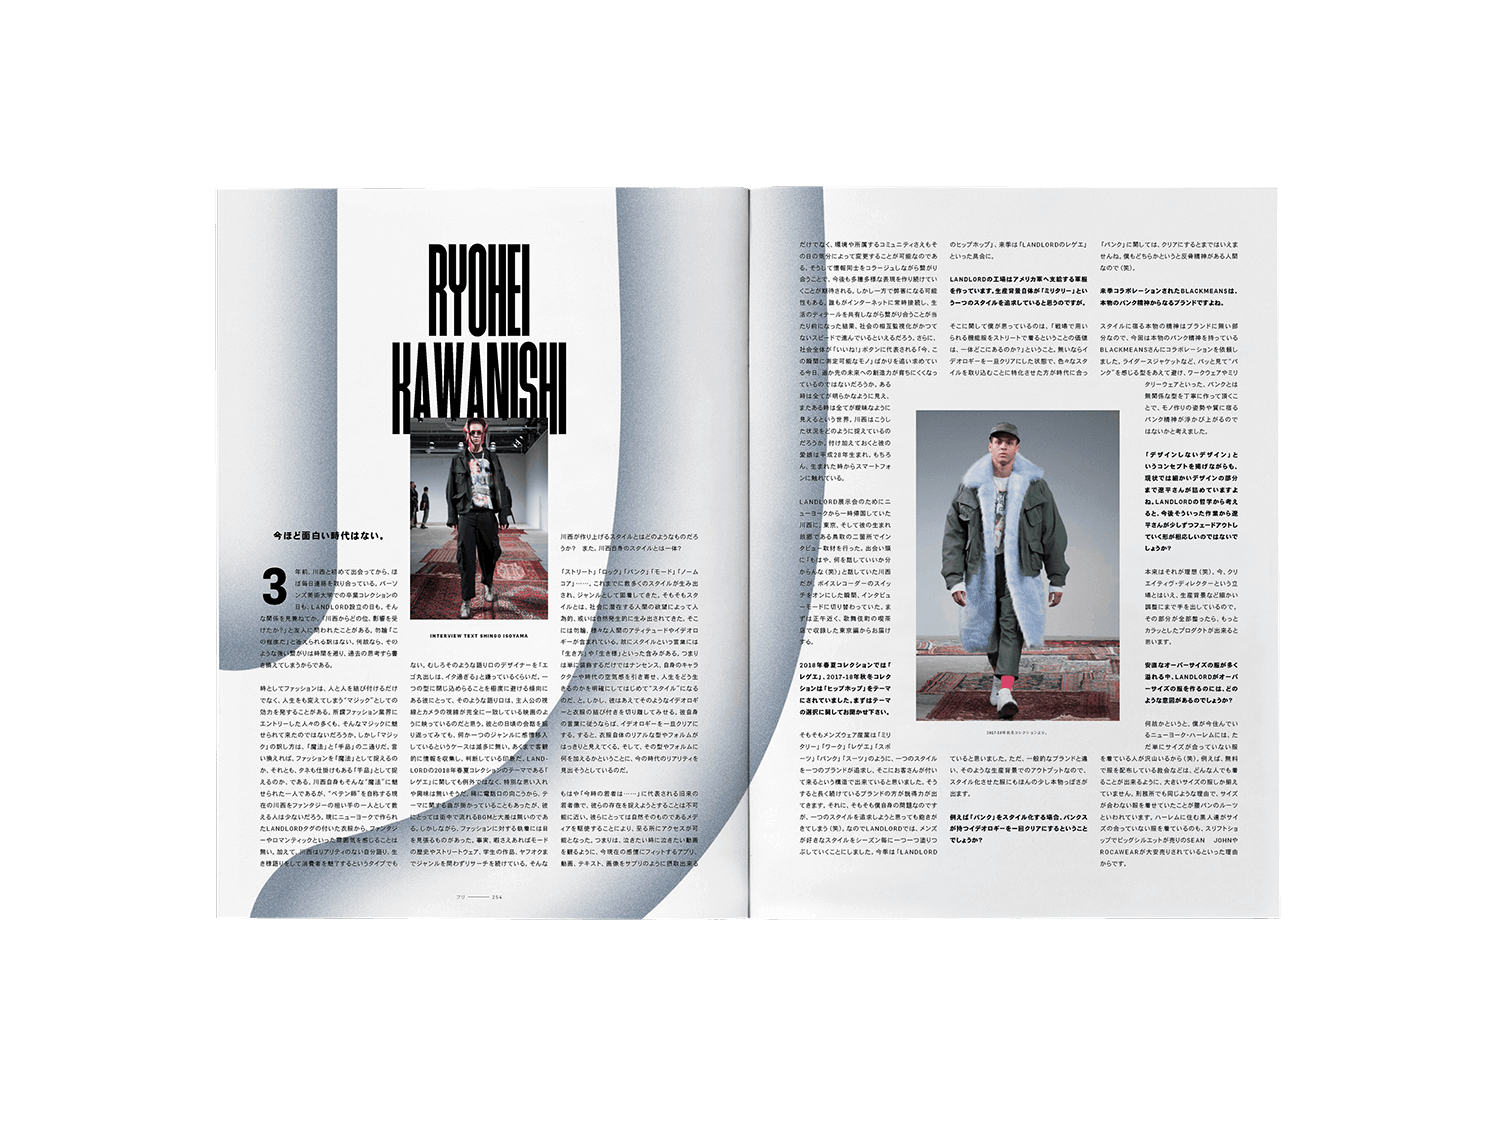 FREE-MAG_ISSUE-06_123-compressor